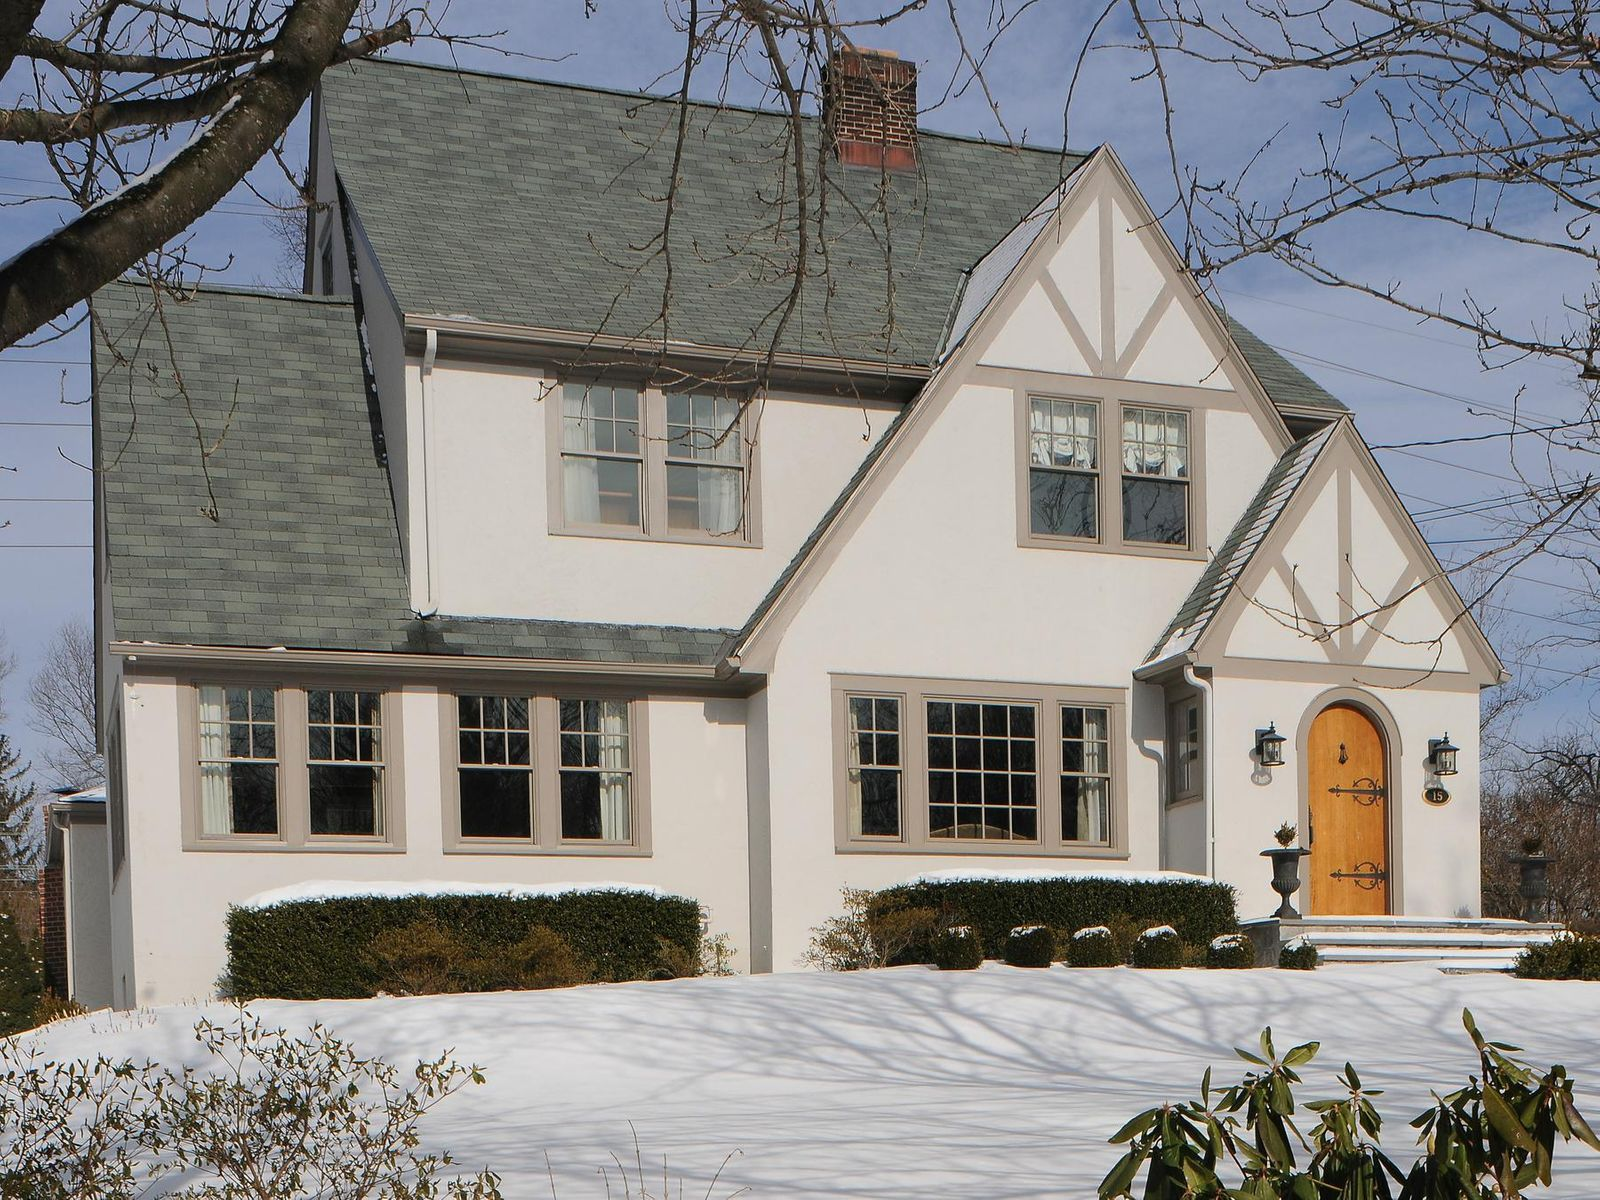 Riverside South of Railroad, Riverside CT Single Family Home - Greenwich Real Estate